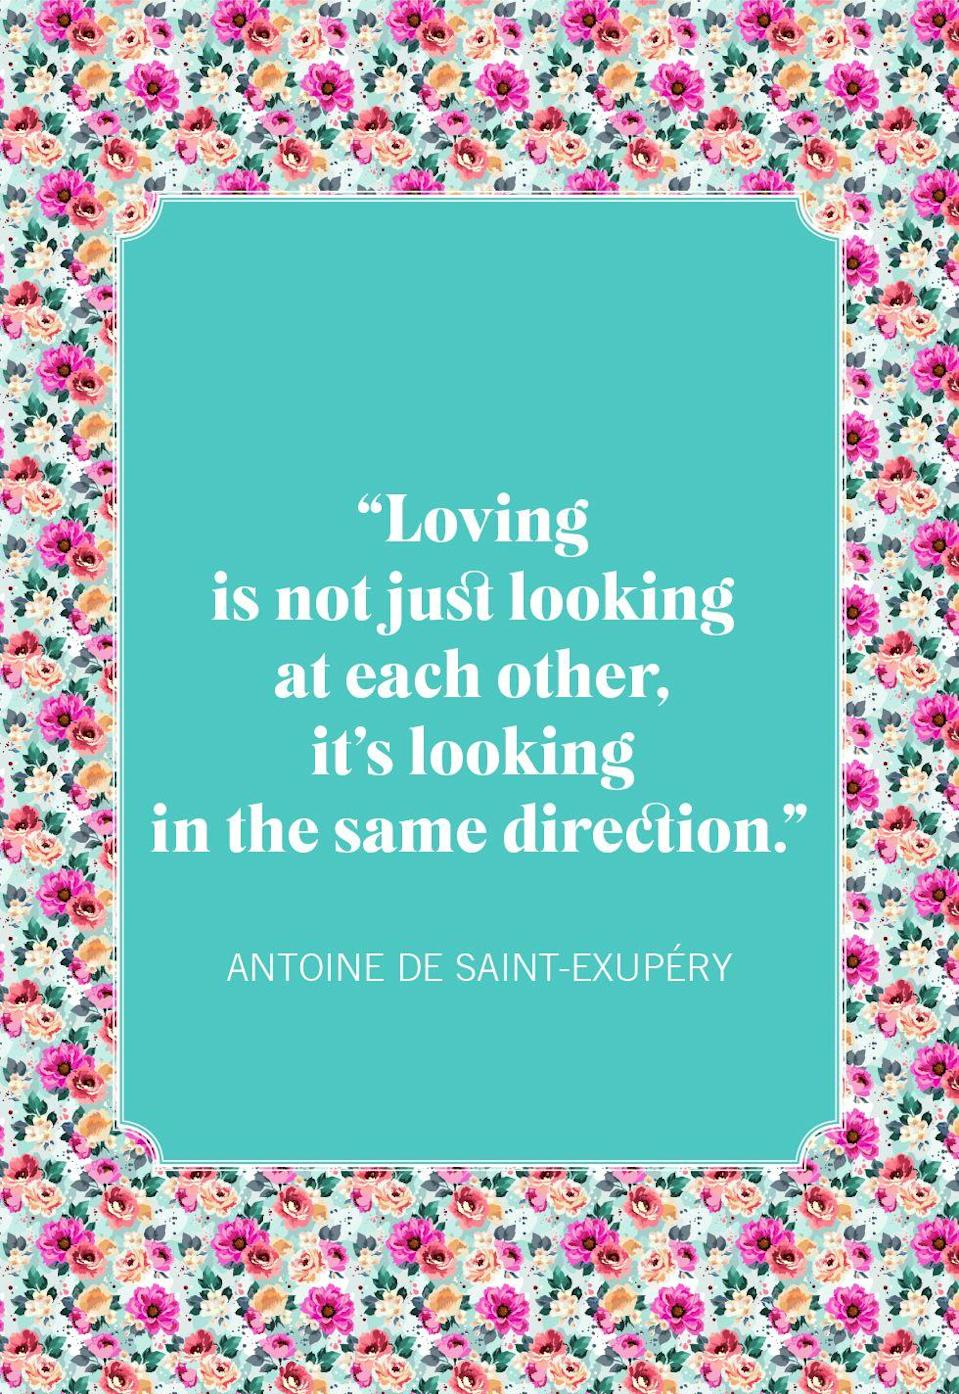 "<p>""Loving is not just looking at each other, it's looking in the same direction.""</p>"